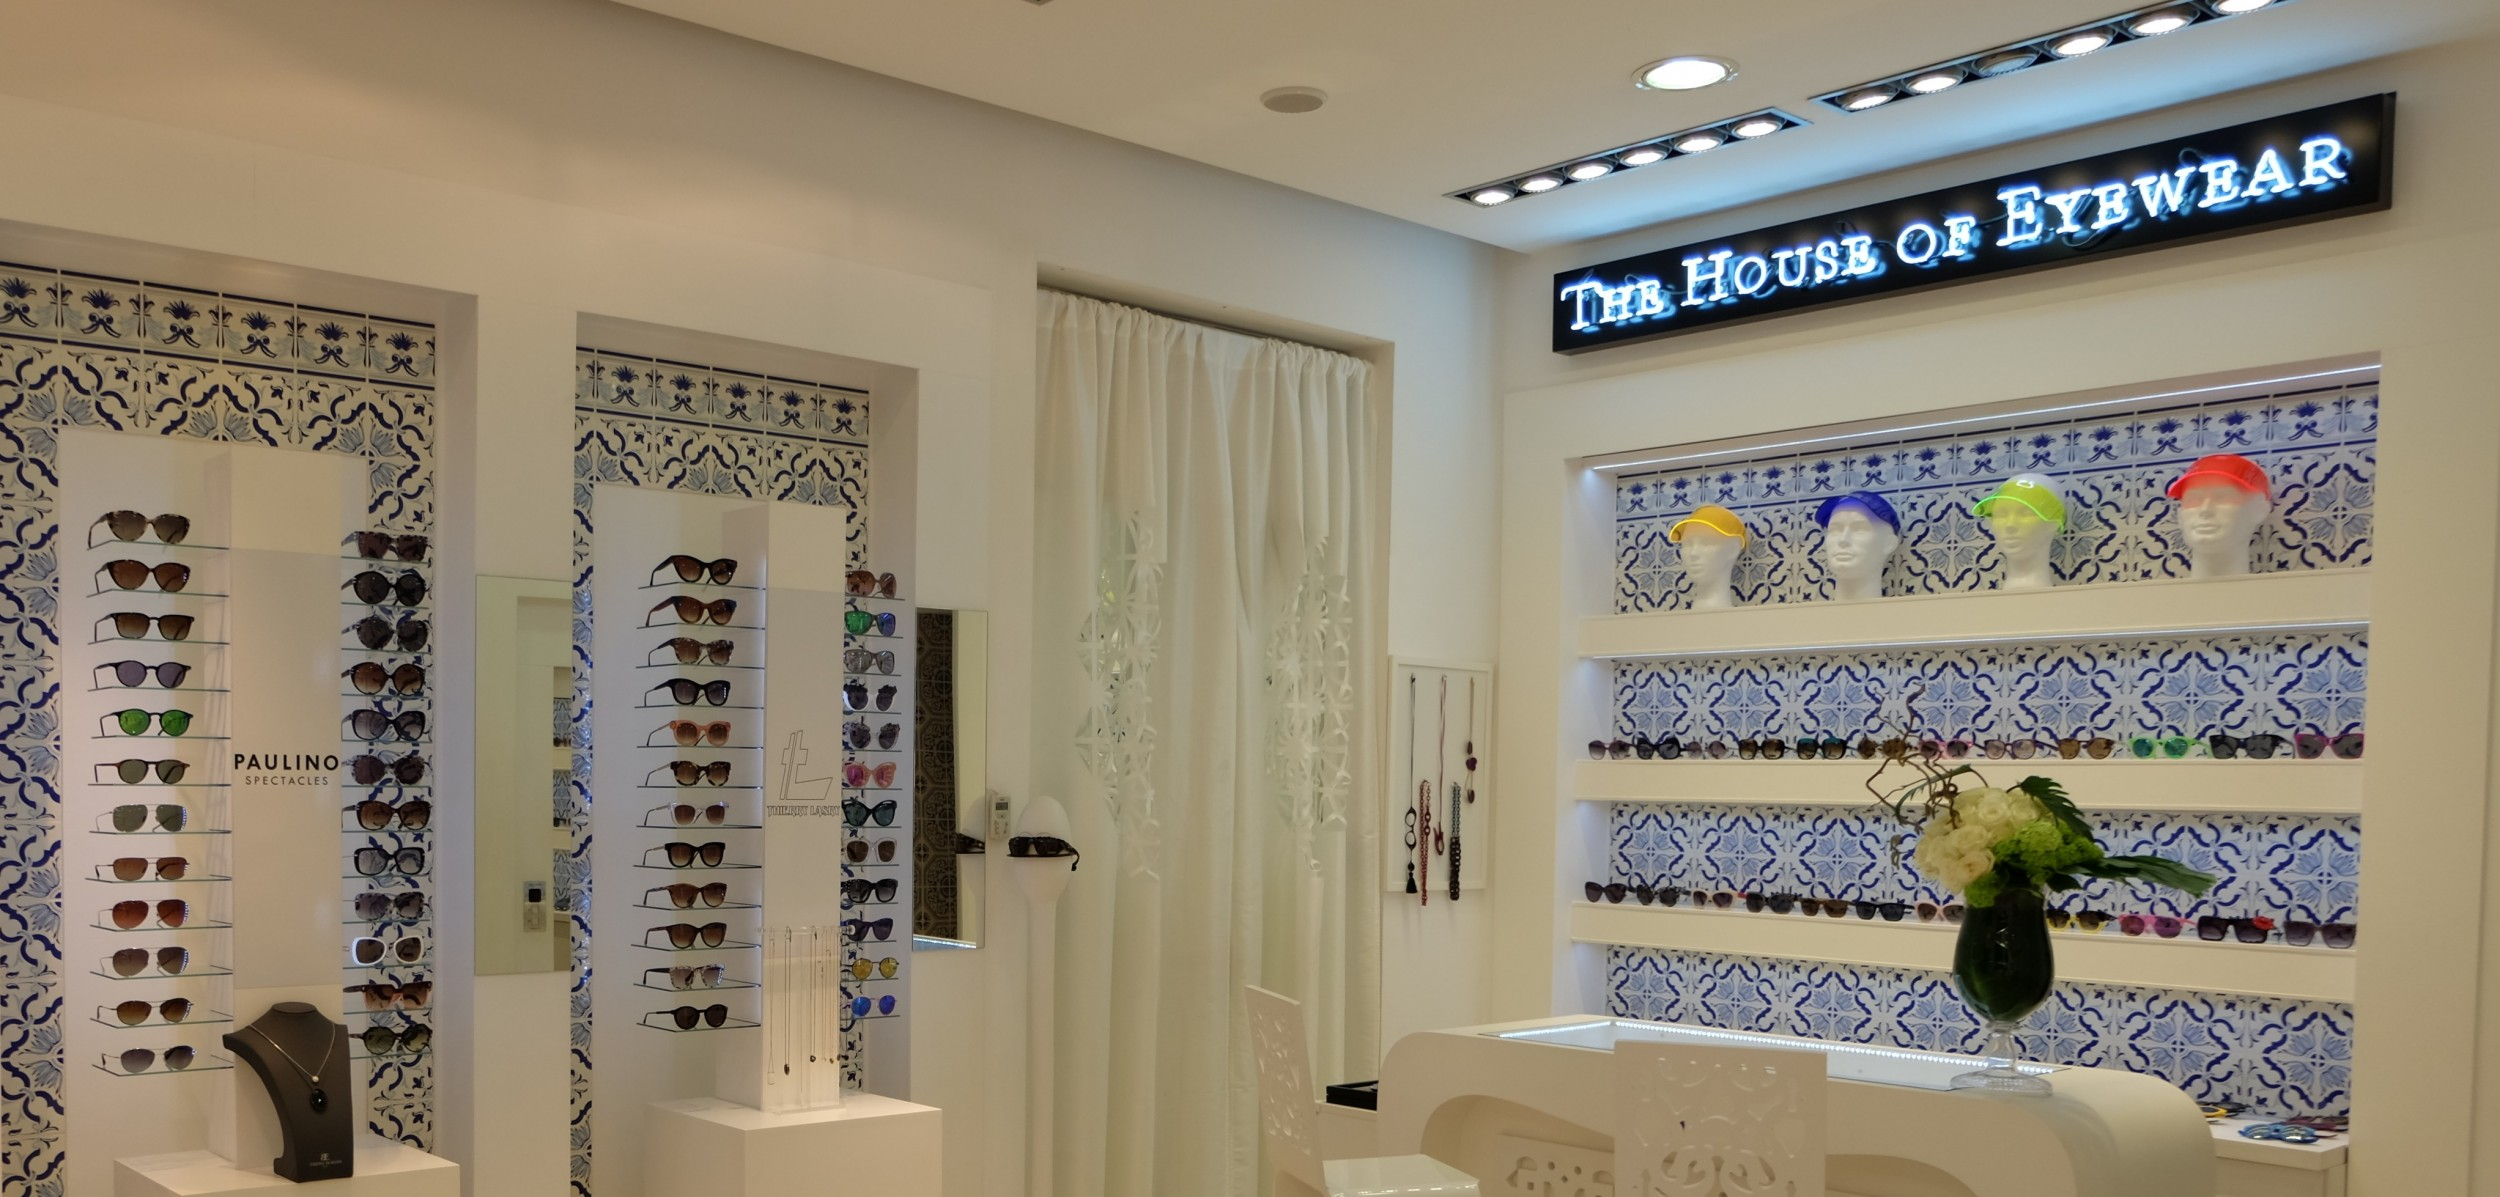 BEAU OPTICIEN ¨PARIS CREATEURS HOUSE OF EYEWEAR